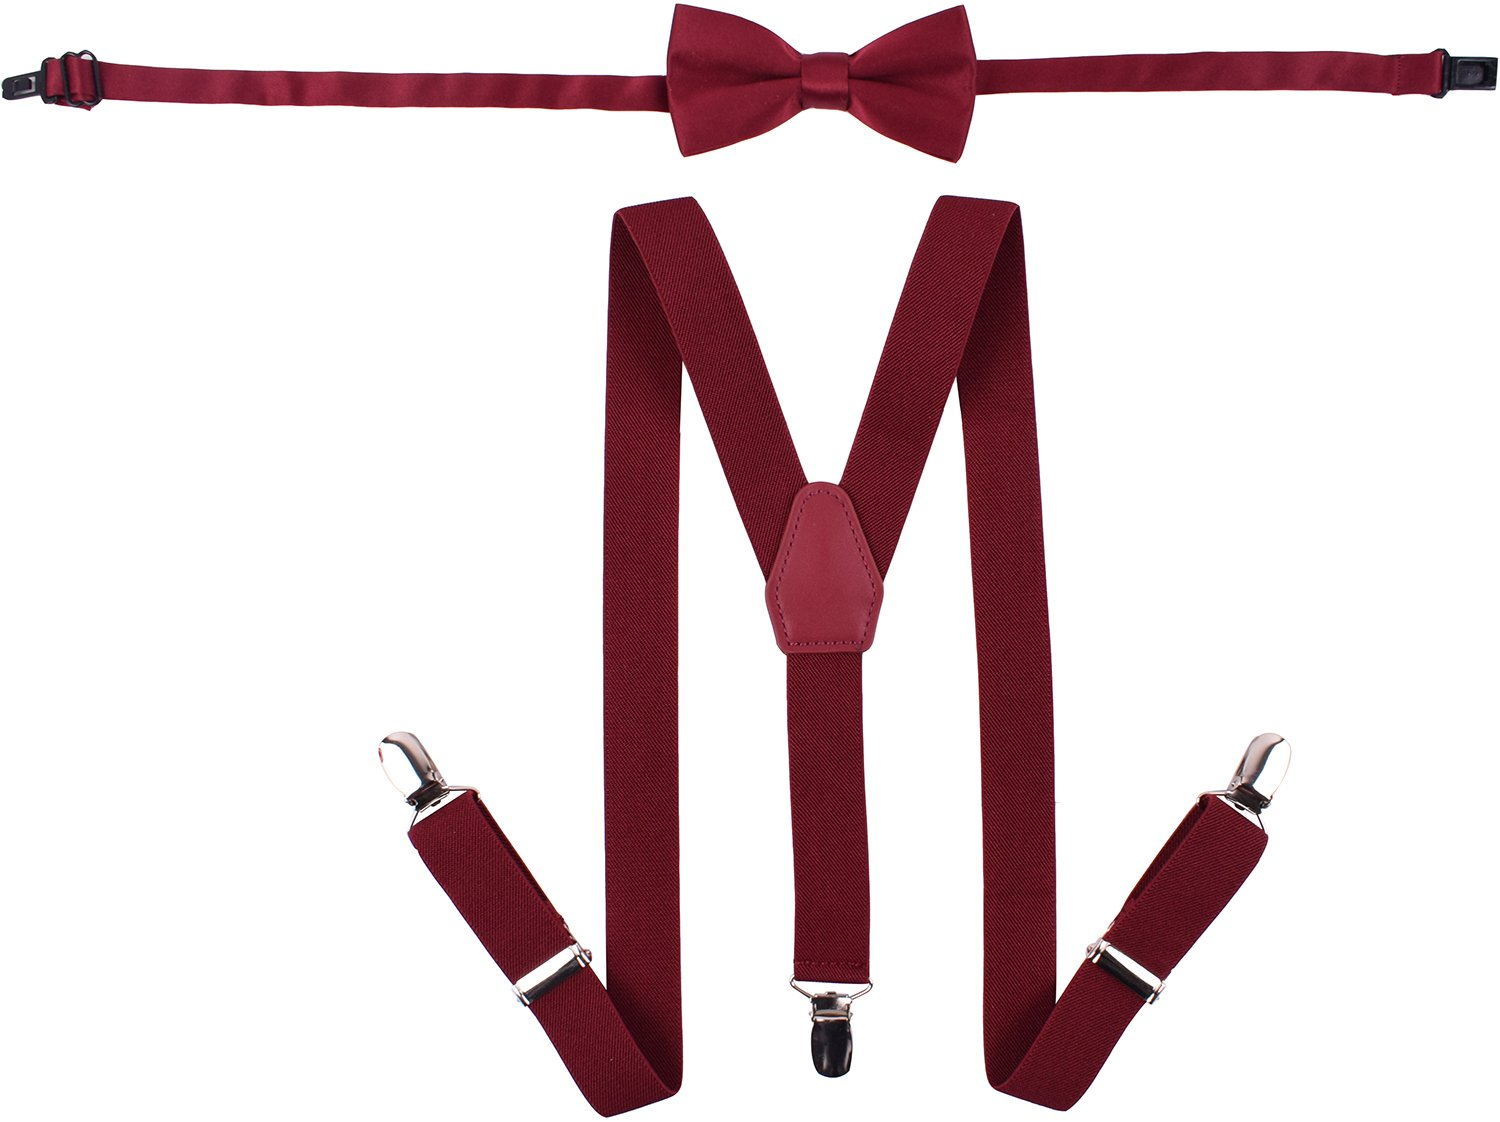 WDSKY Baby Boys' Bow Tie and Suspenders Set Fashion Y Back Wine Red